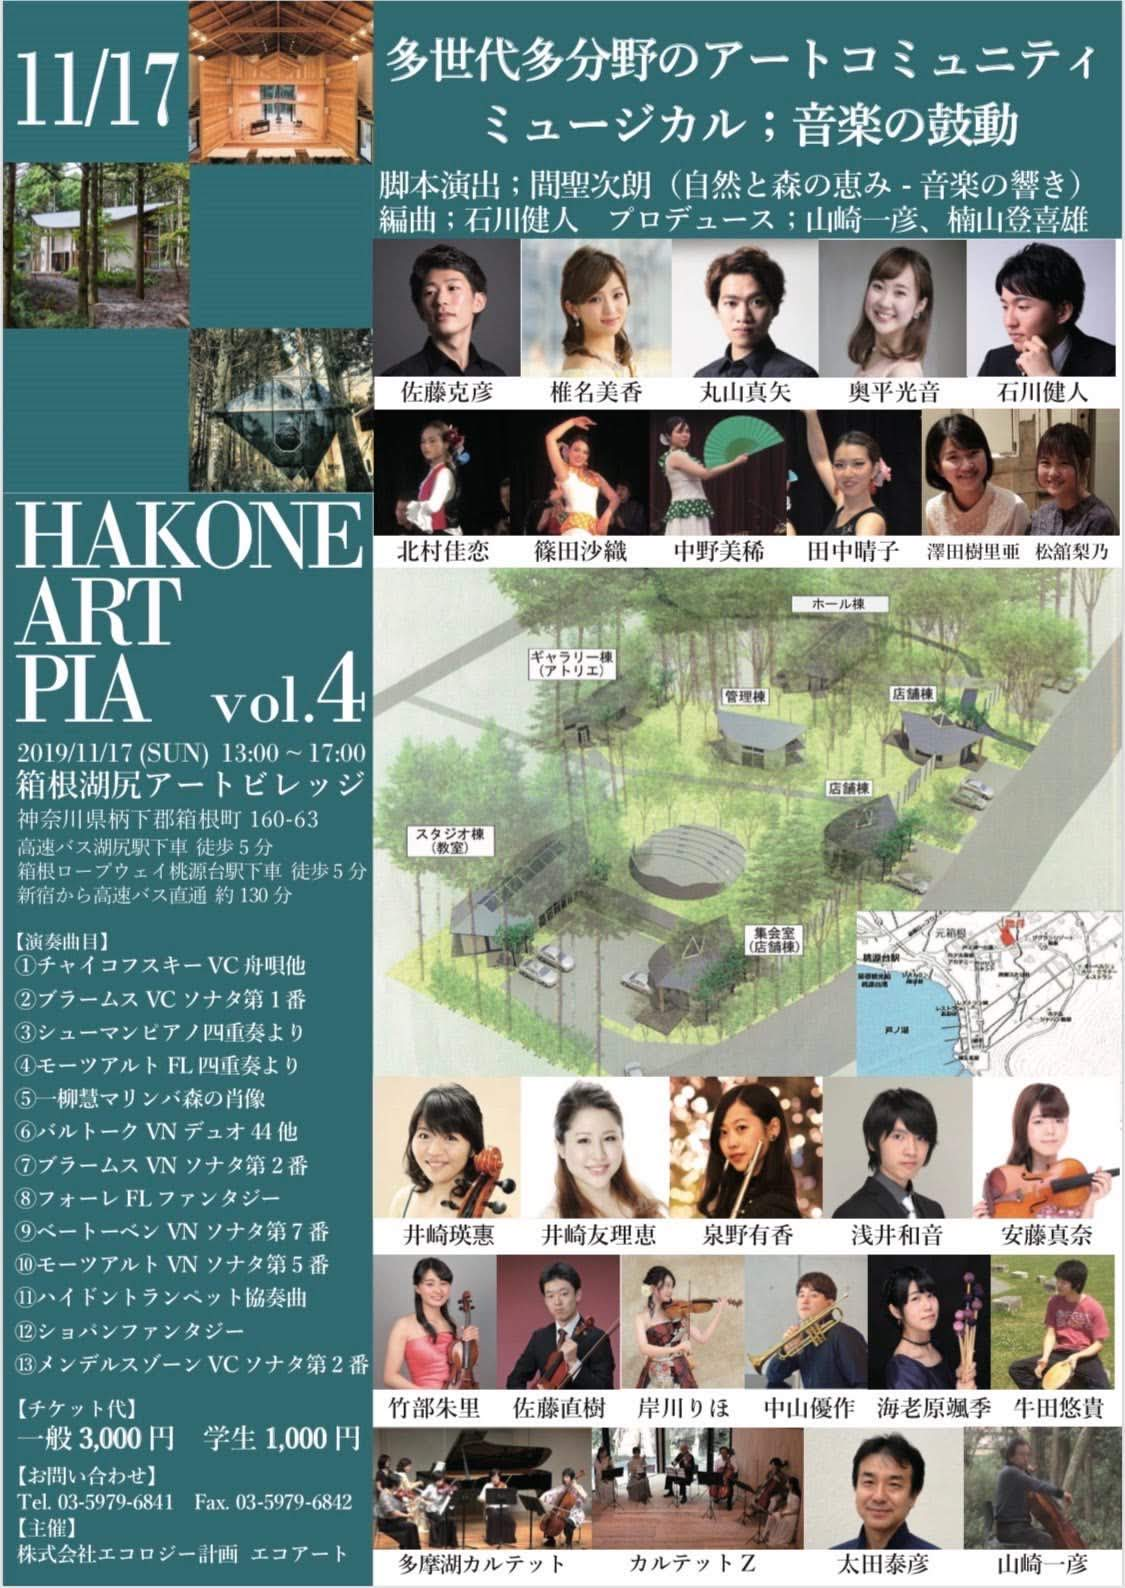 HAKONE ART PIA vol.4